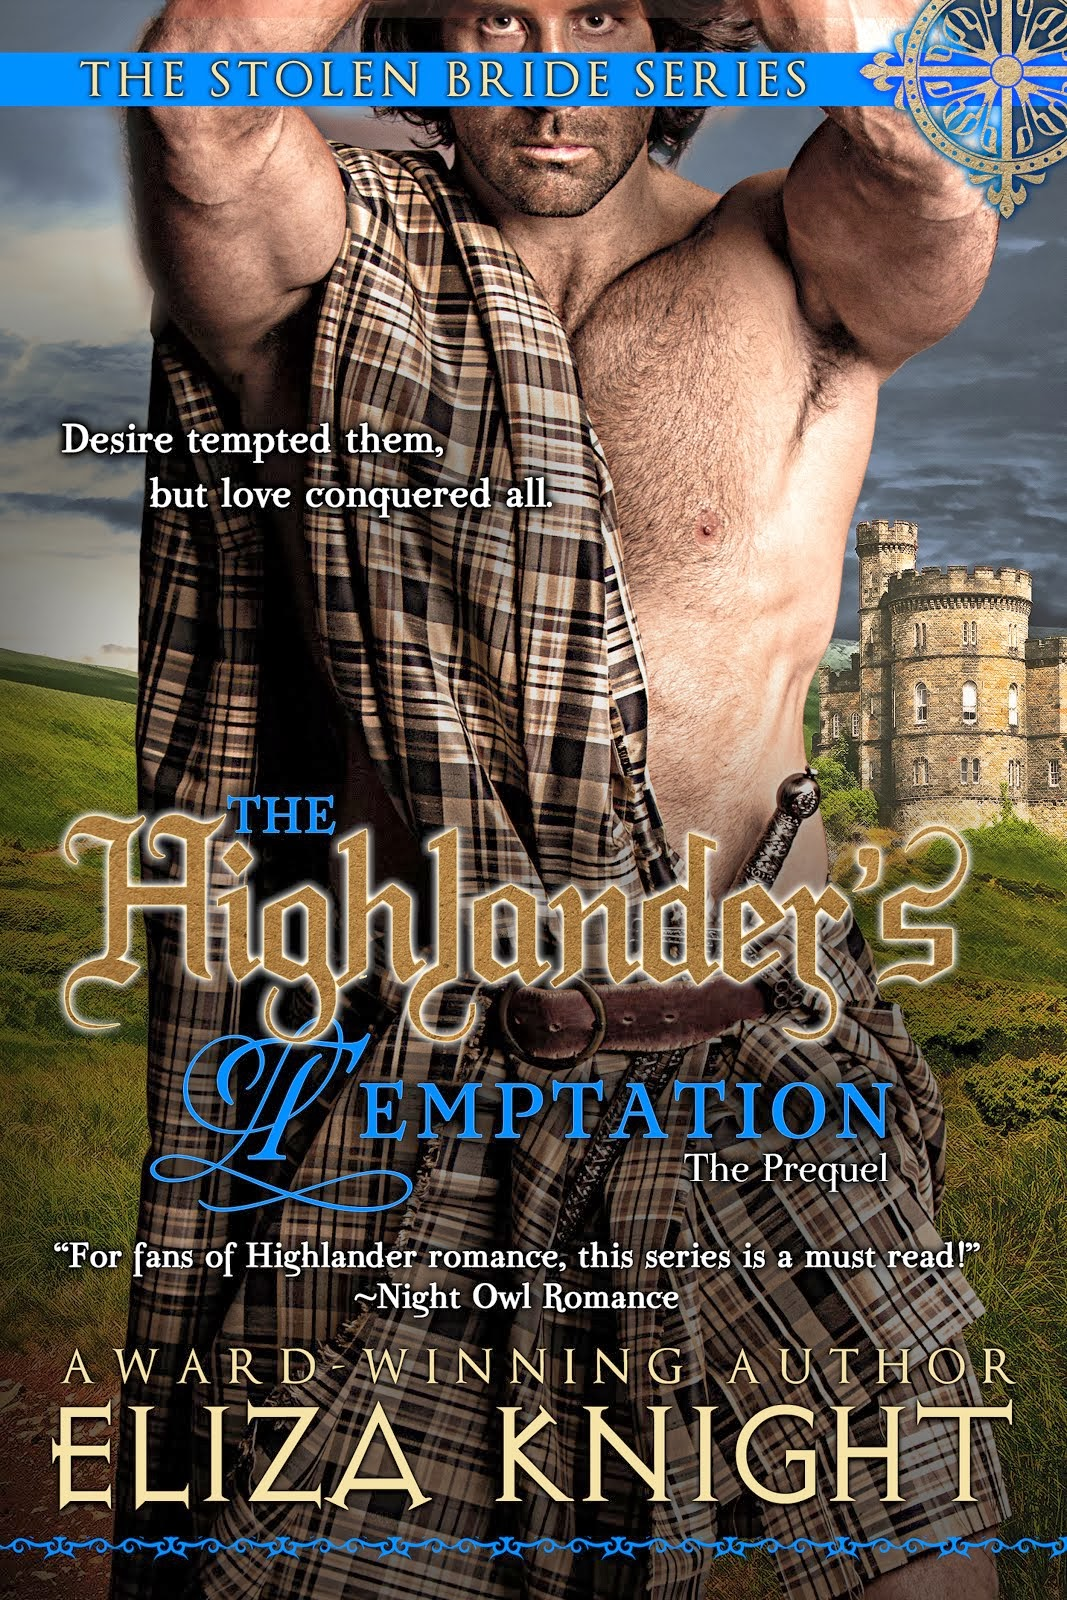 NEW RELEASES! The Highlander's Temptation